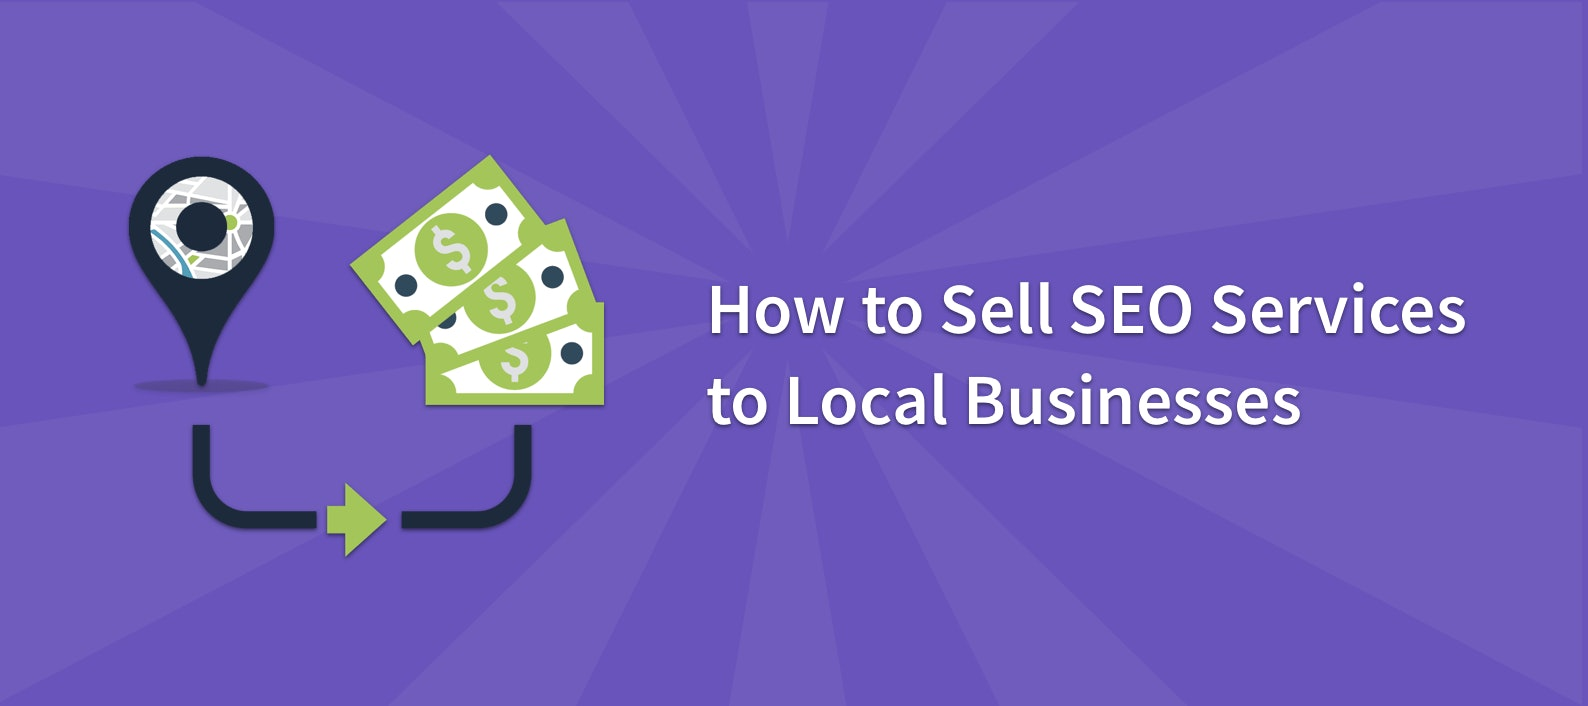 Selling Seo Services To Local Businesses